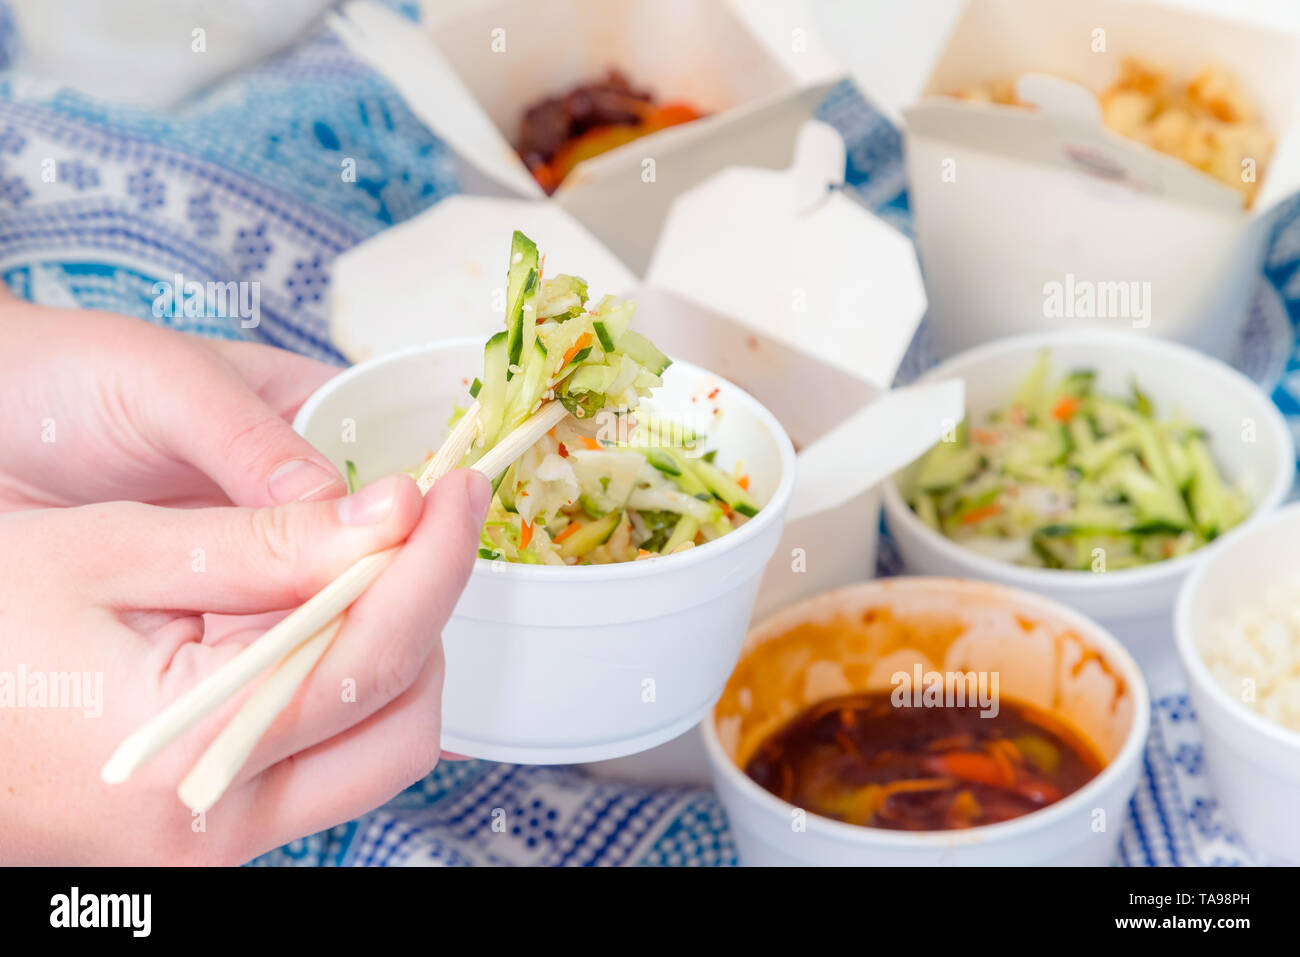 Eating Chinese take away food with chop sticks at home with bed sheets in the background. Spicy asian food in white box - salad, souse, rice with egg, - Stock Image